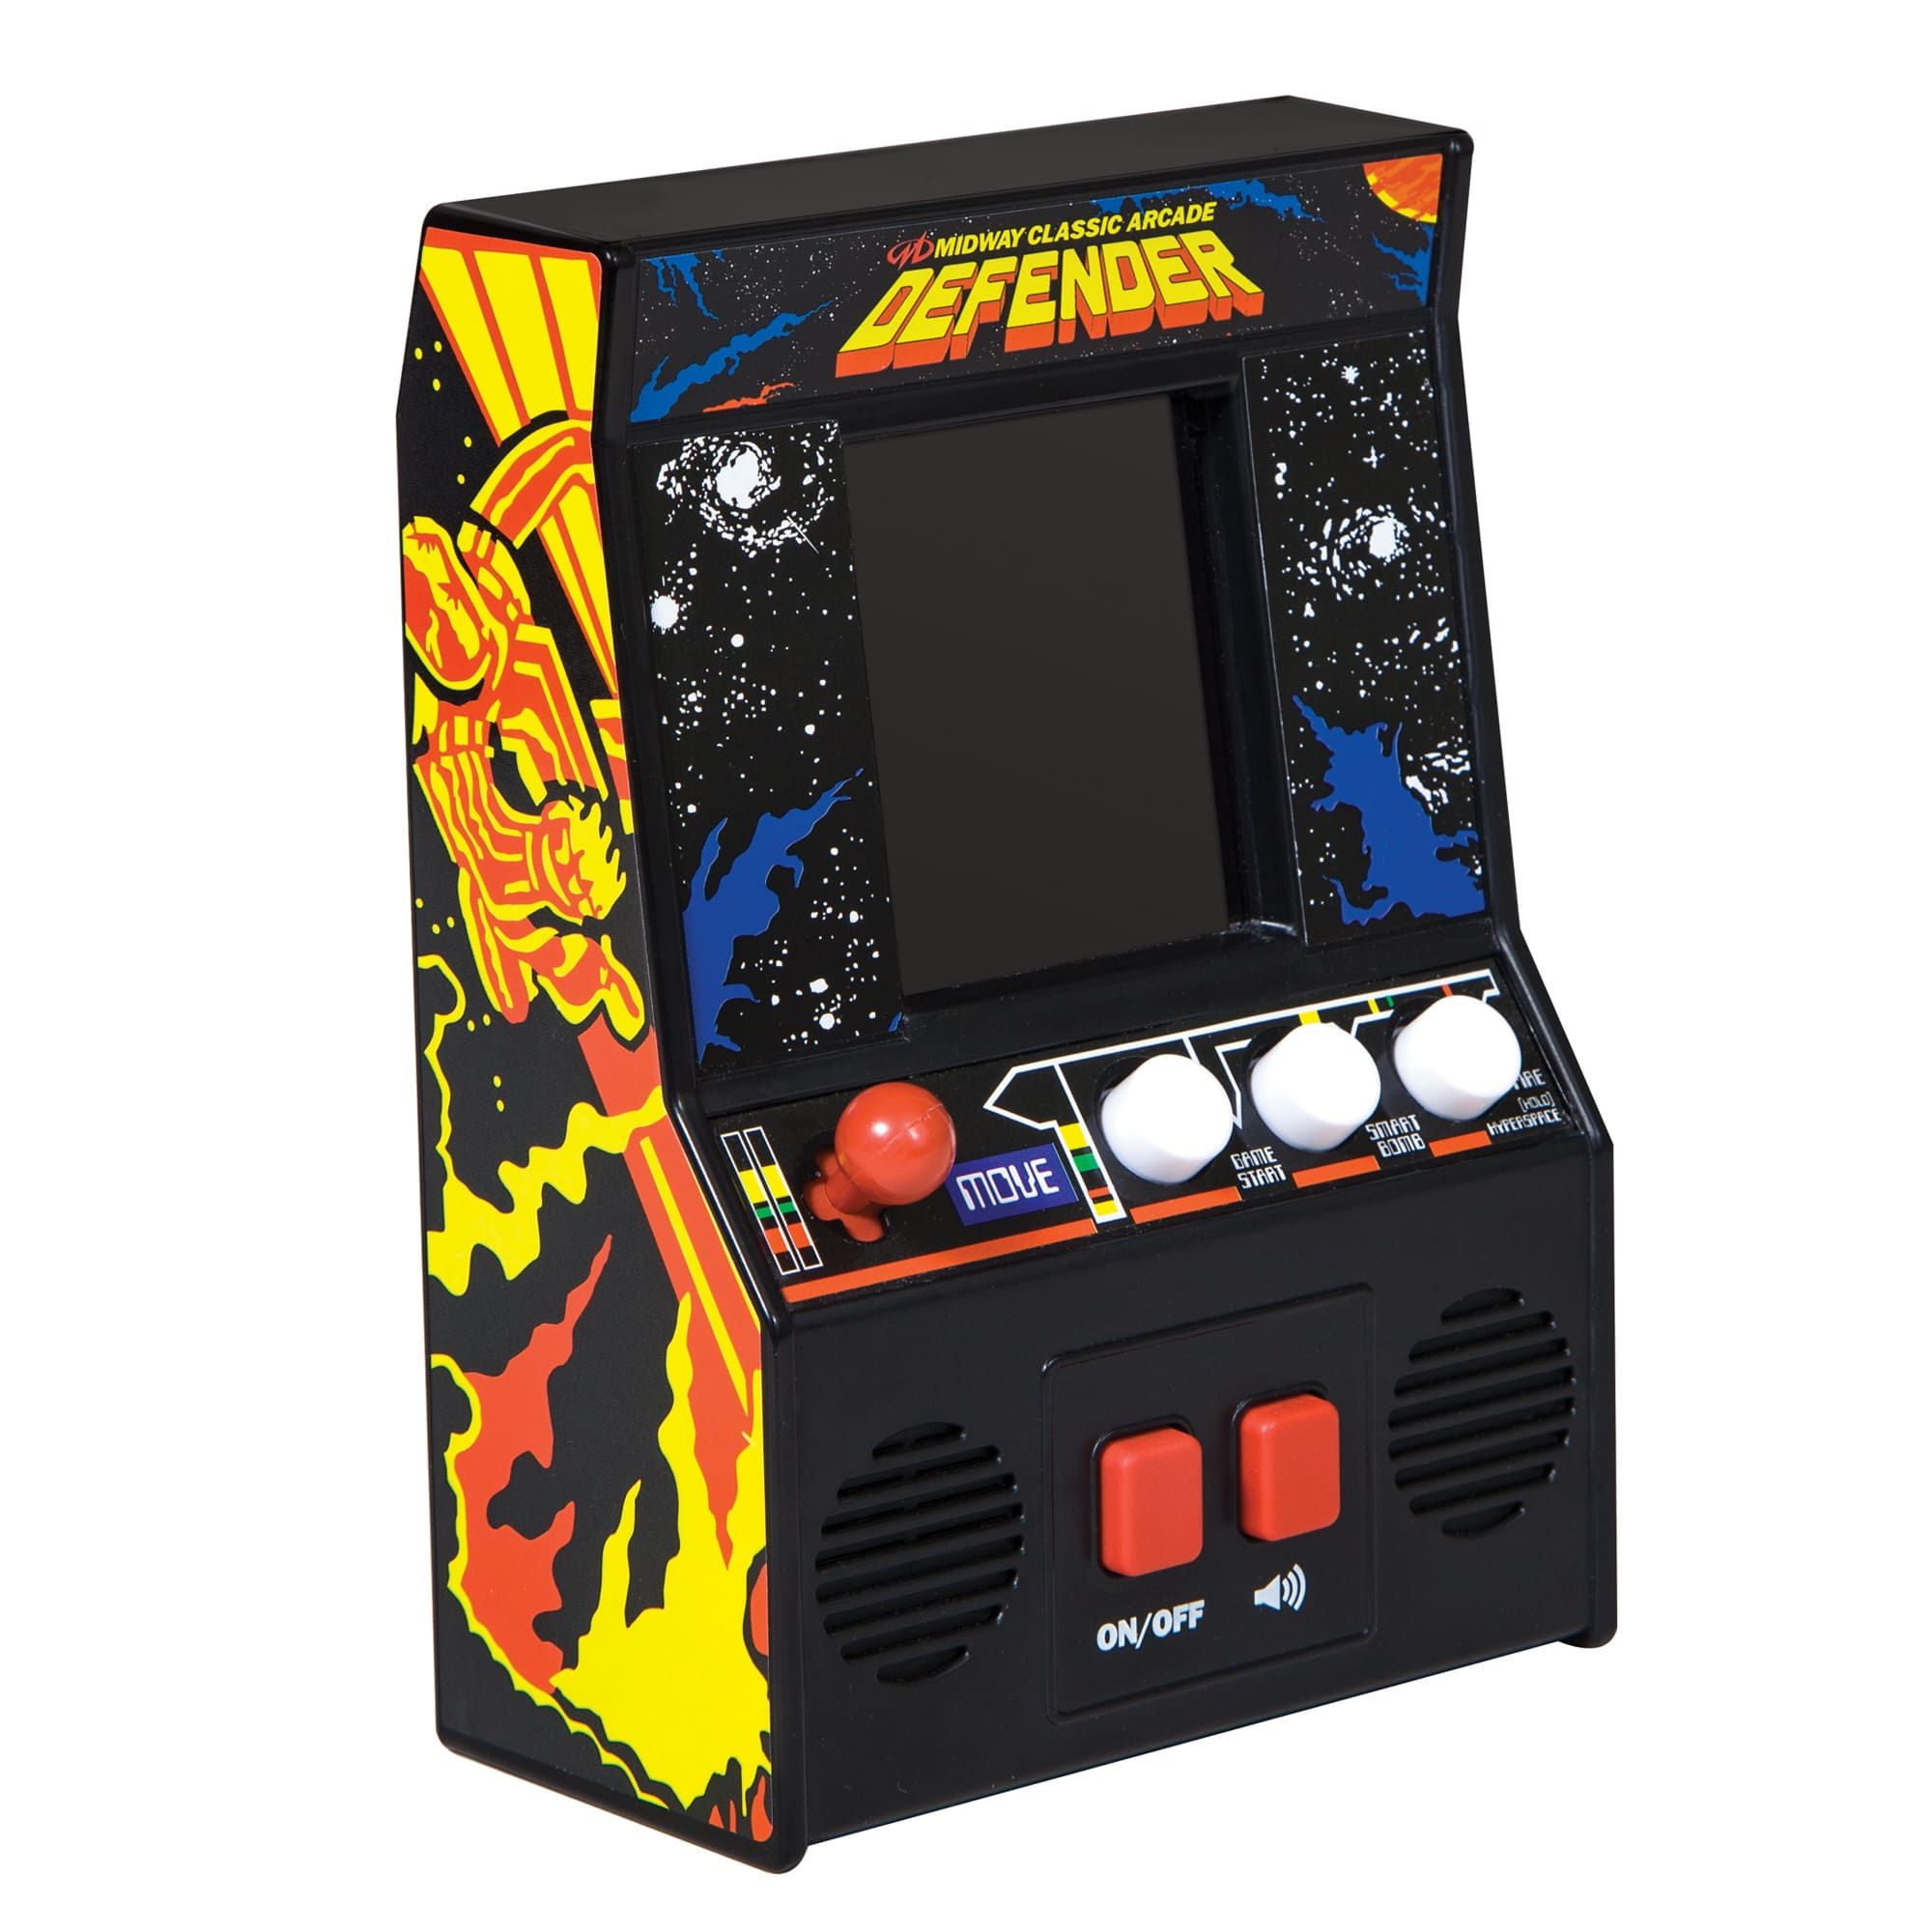 Defender - Handheld Arcade Game - Battery Operated Mini Fun Retro Classic Video Game